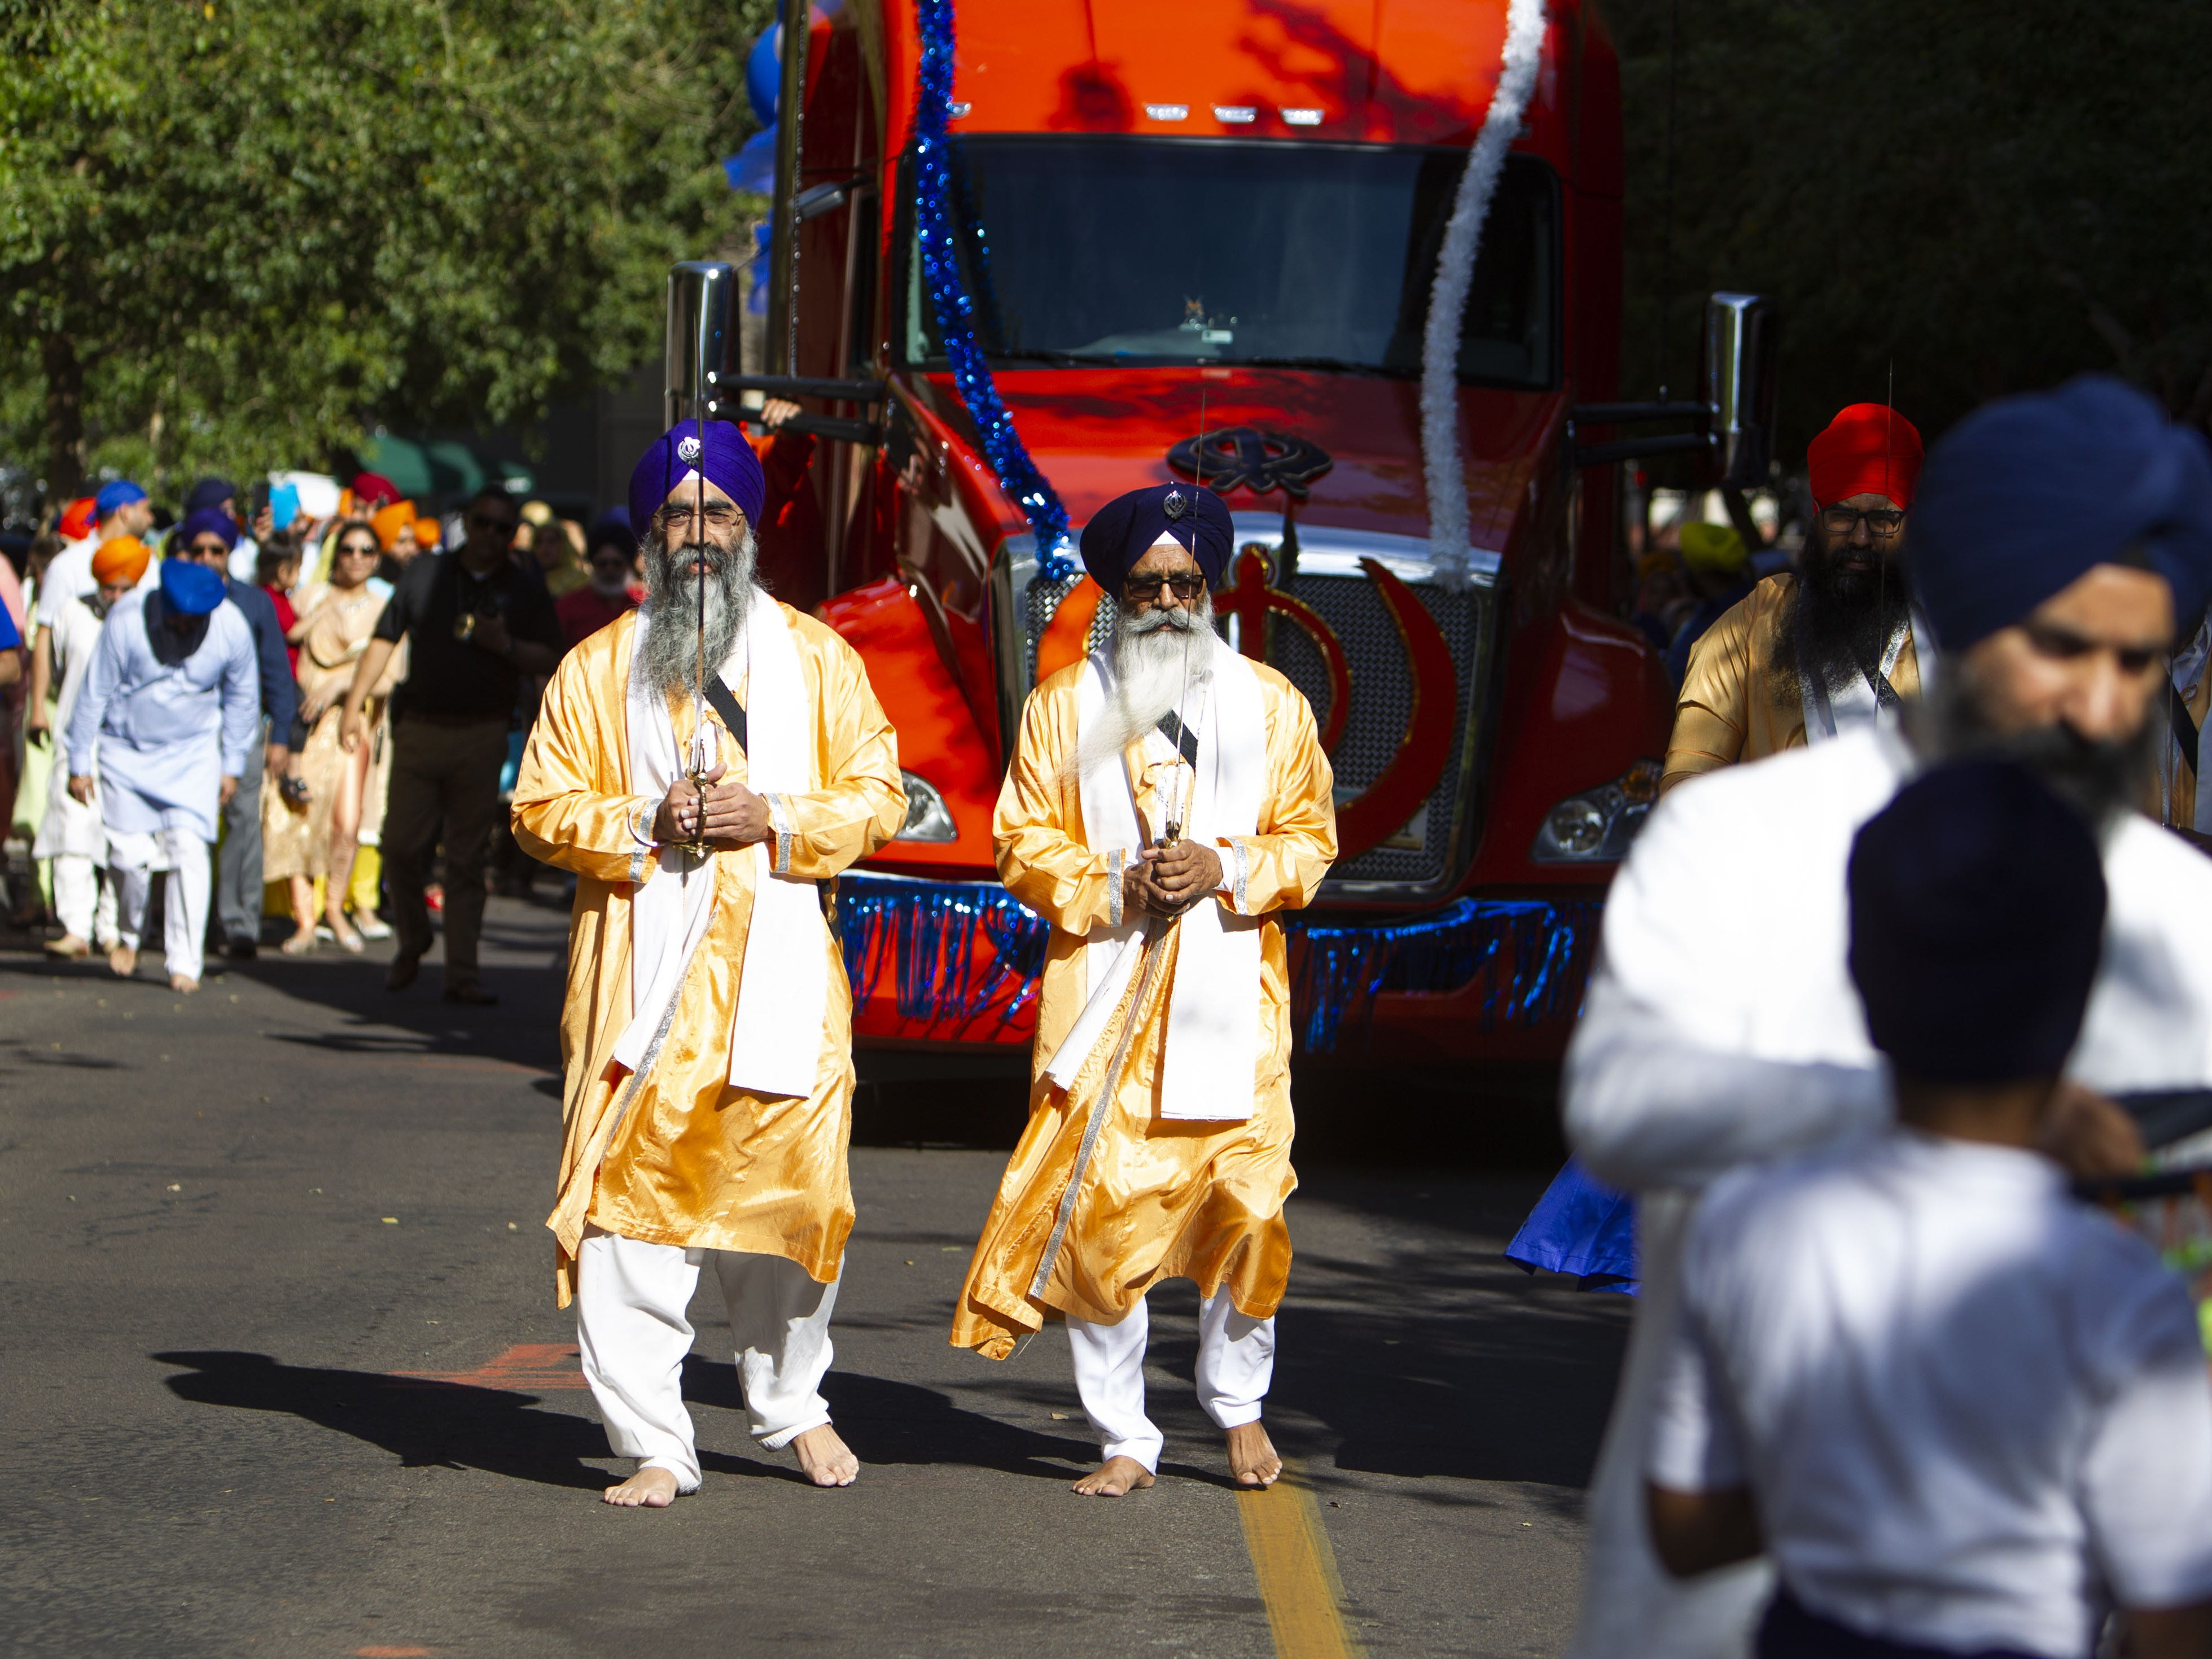 From left, Raj Rekhi and Gurbax Singh are two of the Panj Pyare who lead the Nagar Kirtan procession through downtown Phoenix on March 24, 2019.